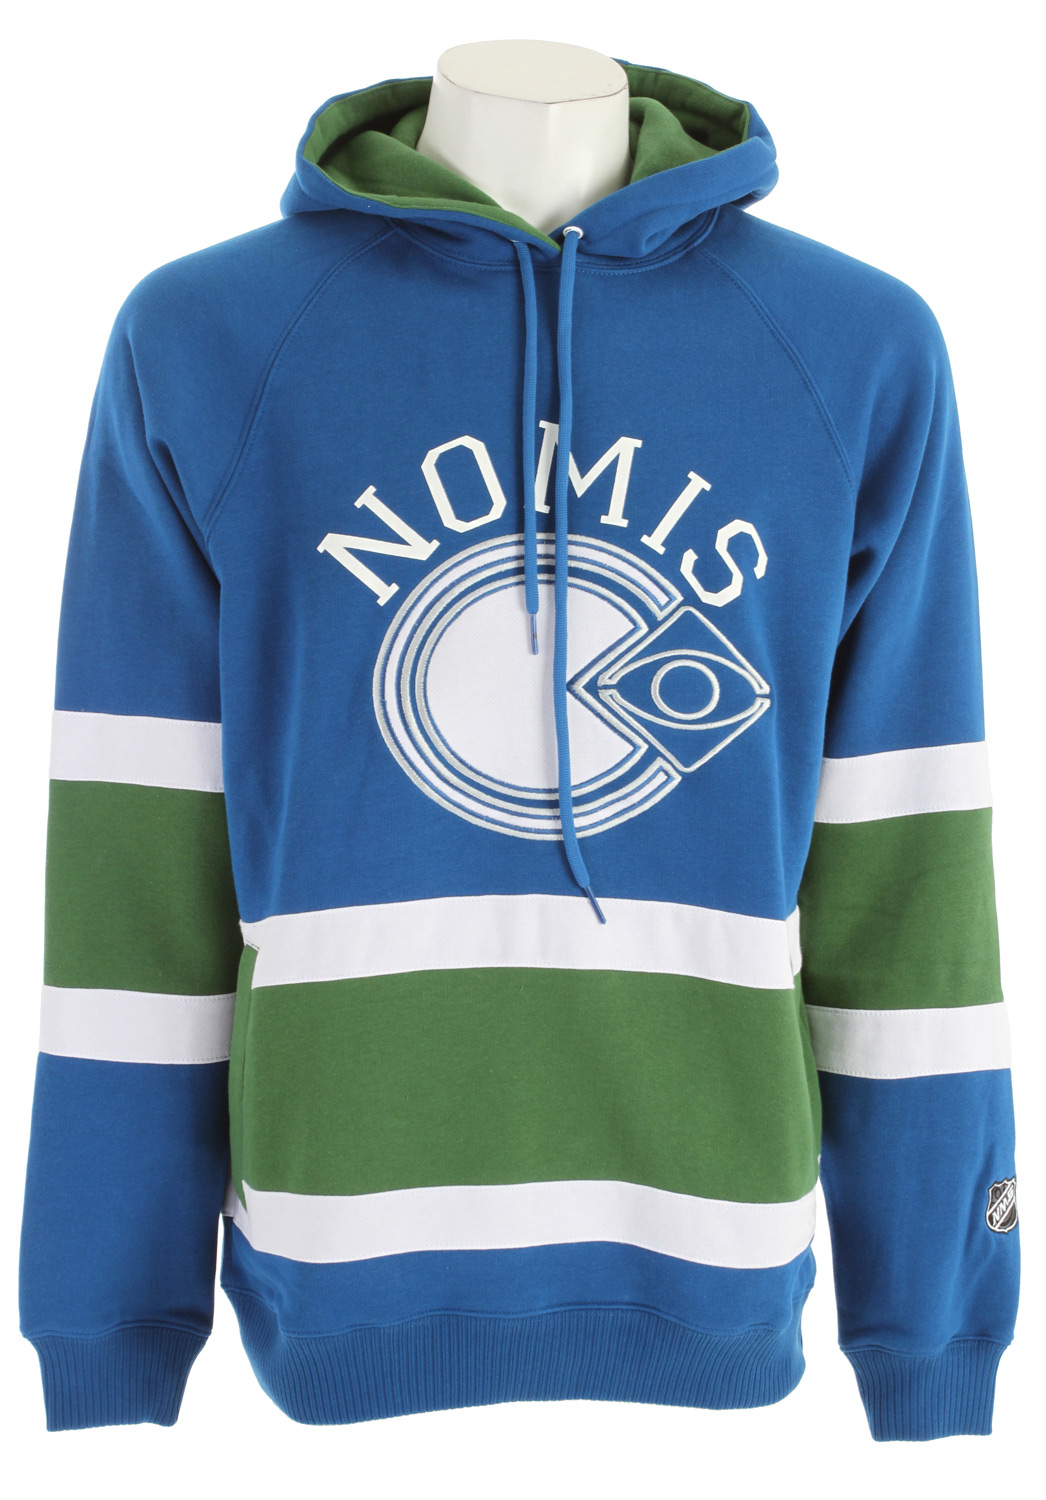 Snowboard Support your local team and your real favorite sport (snowboarding) with this awesome Nomis hoodie. Key Features of the Nomis NHL3 Hoodie: Material: cotton blend Fit: regular - $62.95